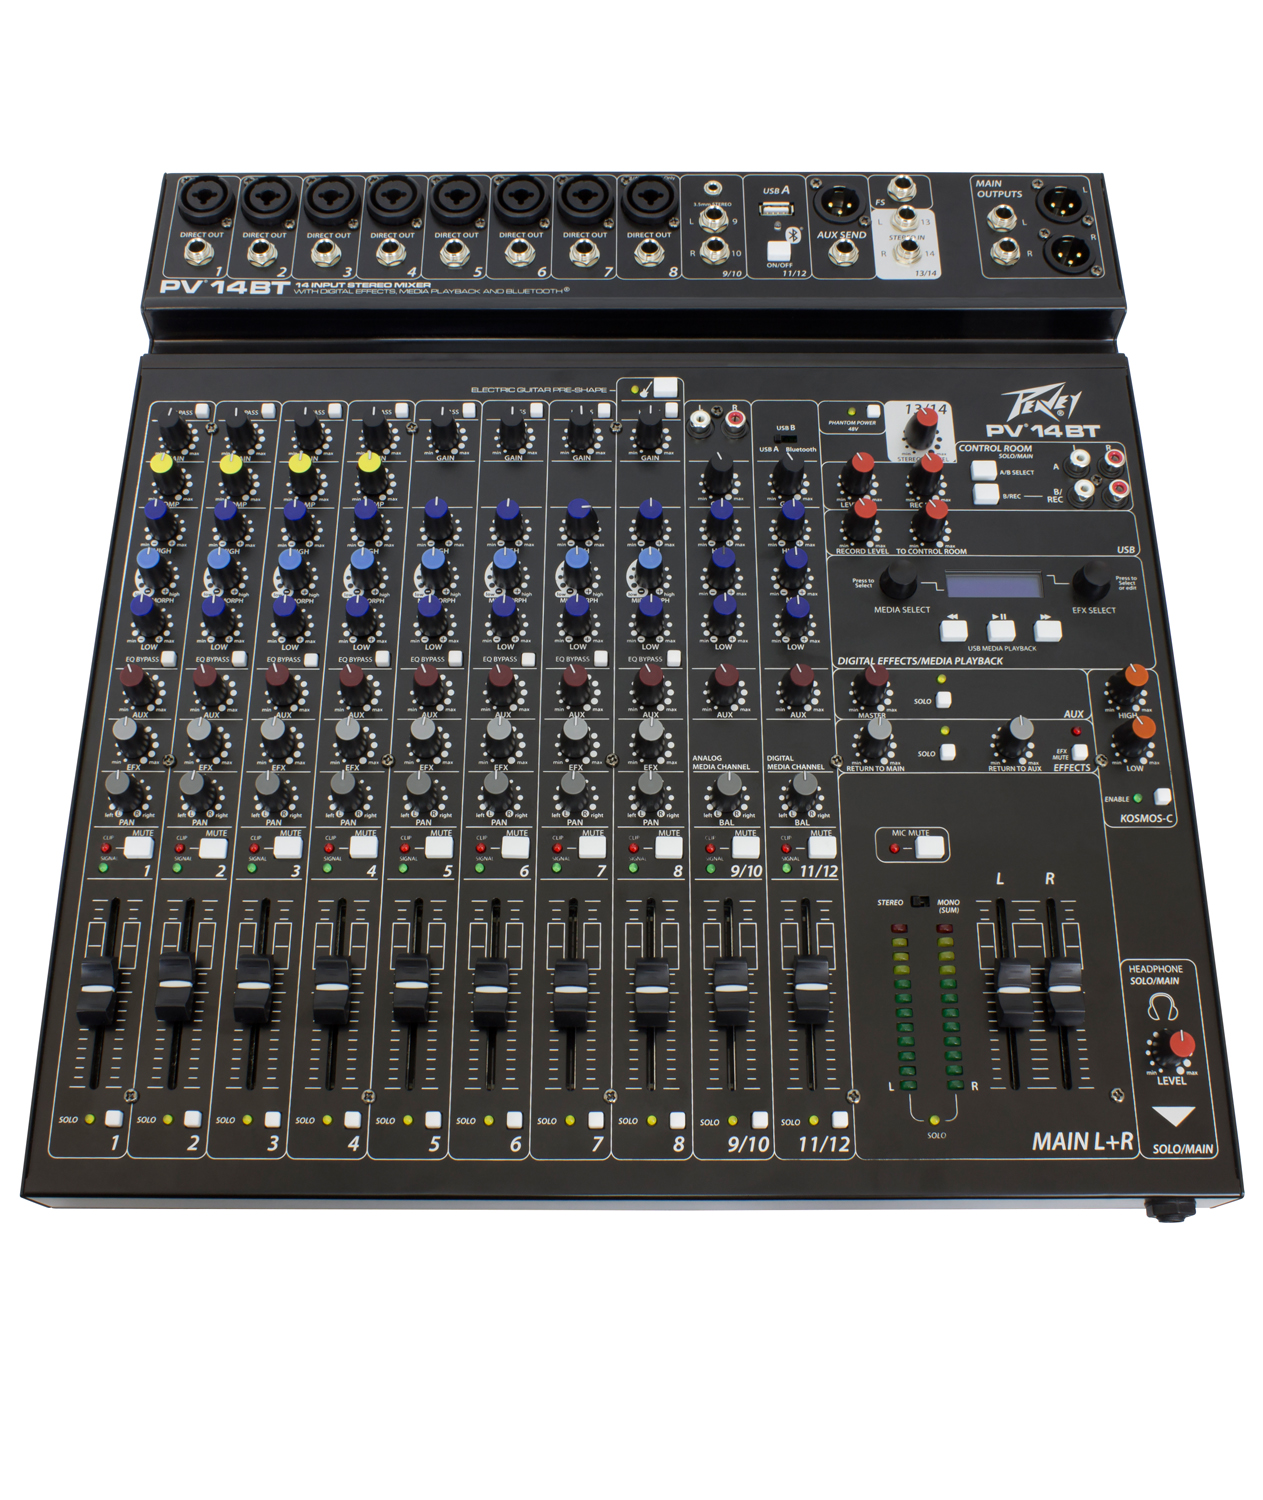 pv 14 bt peavey com rh peavey com Peavey Portable Powered Mixer Peavey Portable Powered Mixer XR